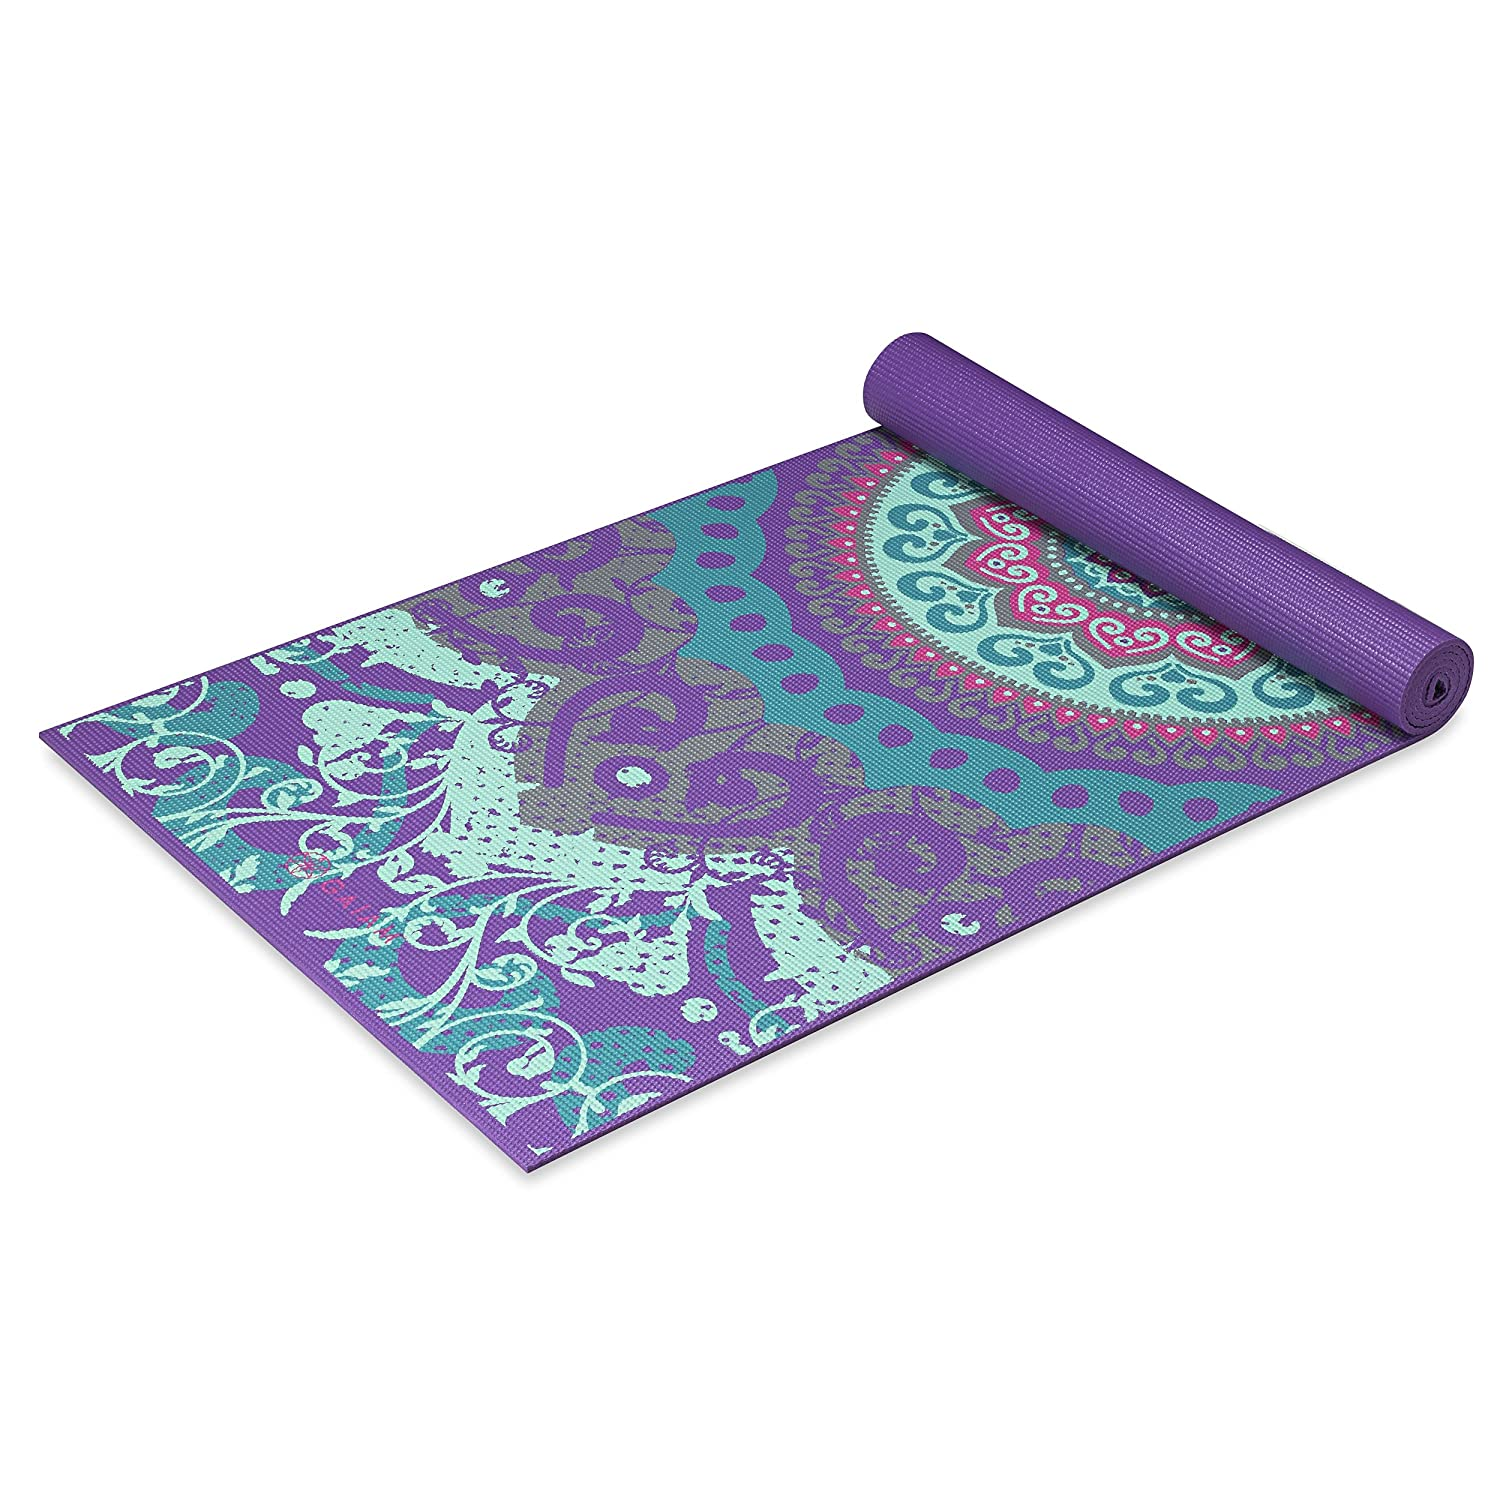 vagabondgoods products best yoga vagabond goods thick mats twilight printed mat online